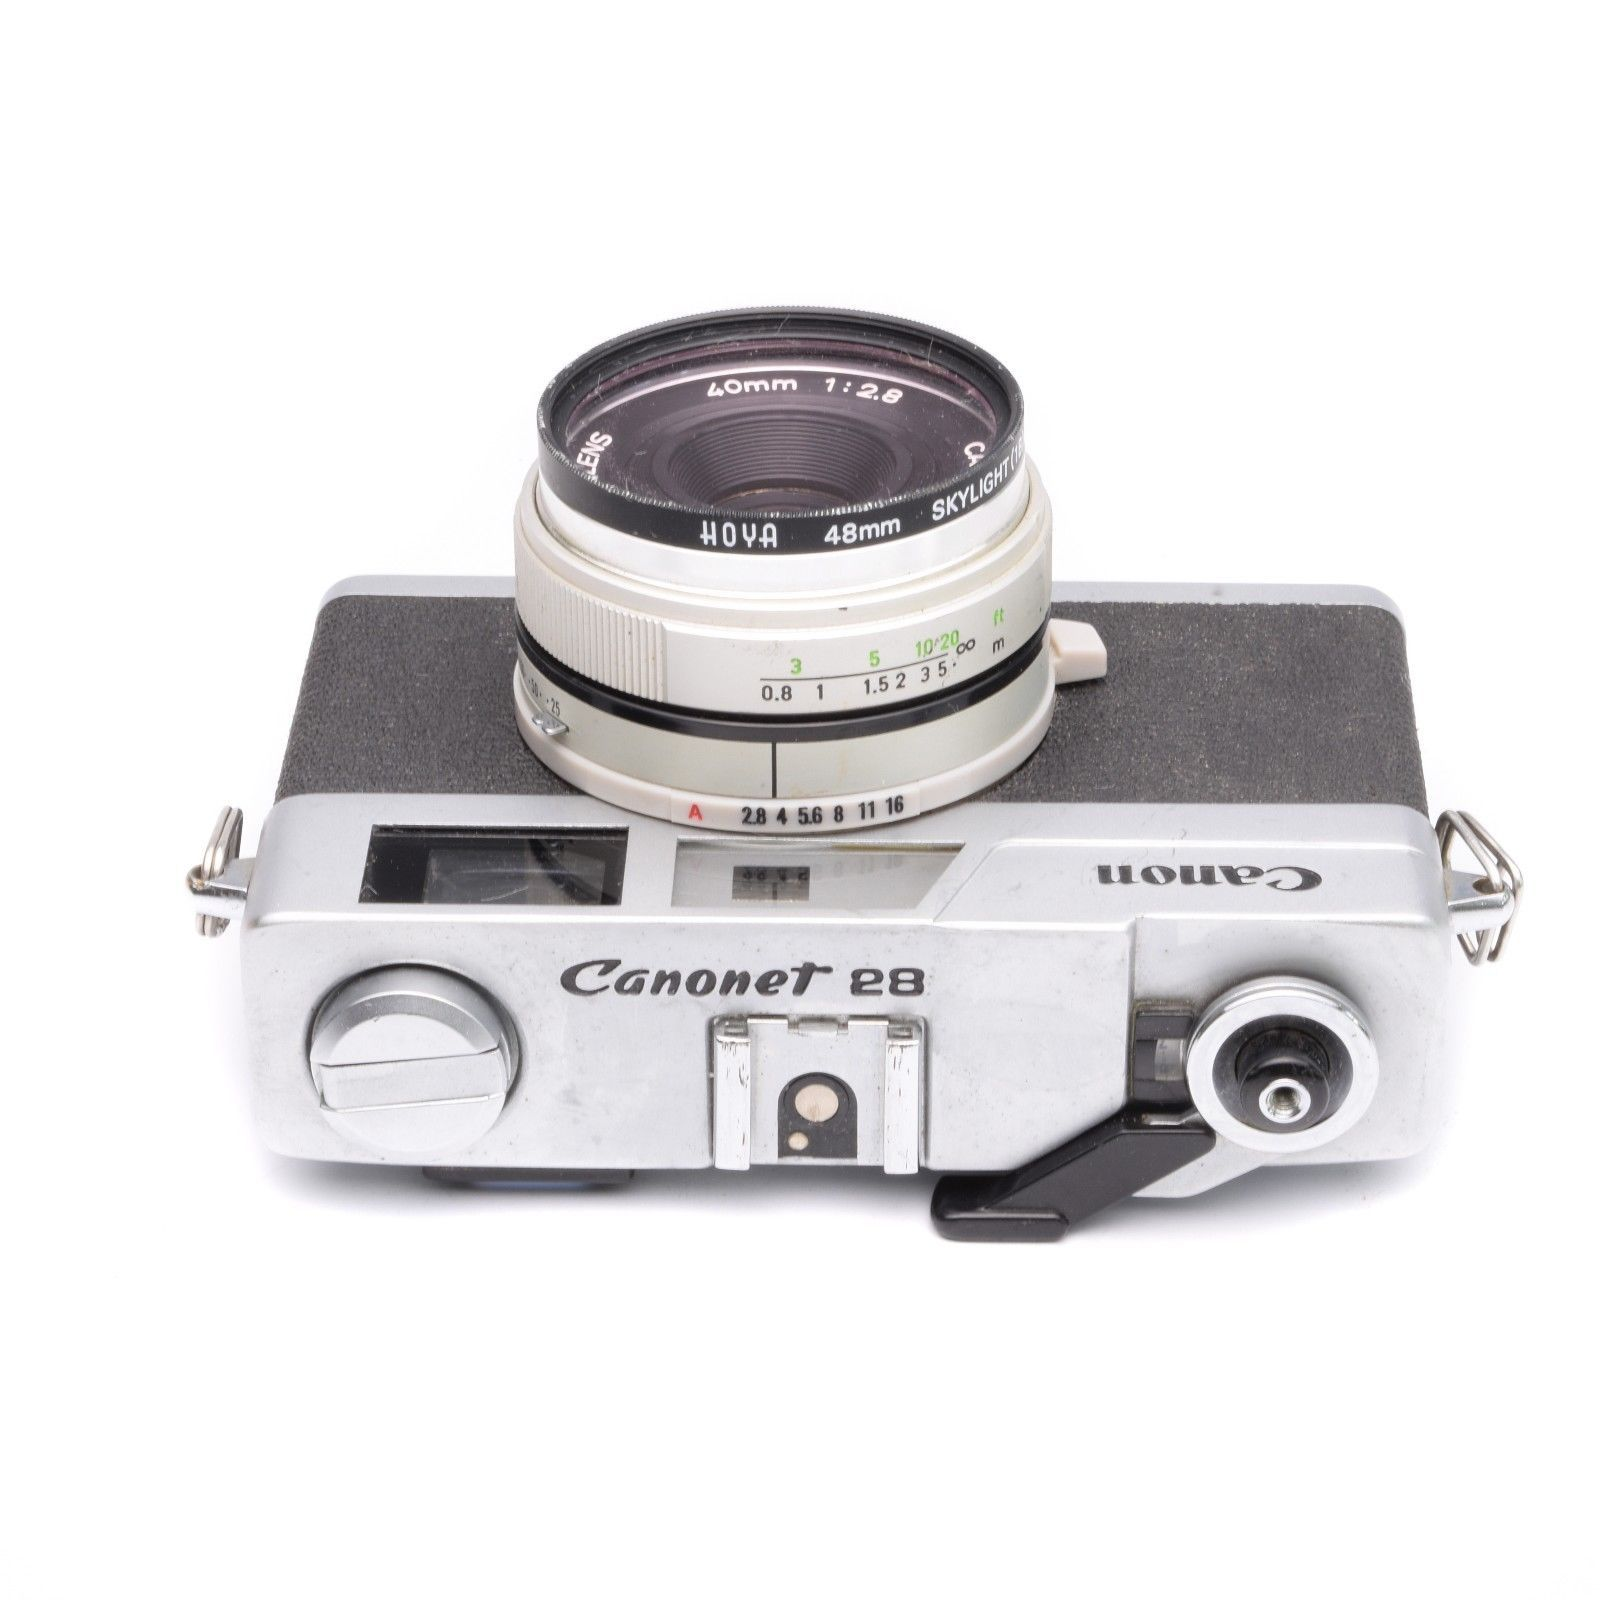 Canon Canonet 28 Camera with 40mm f/2.8 Lens c.1971